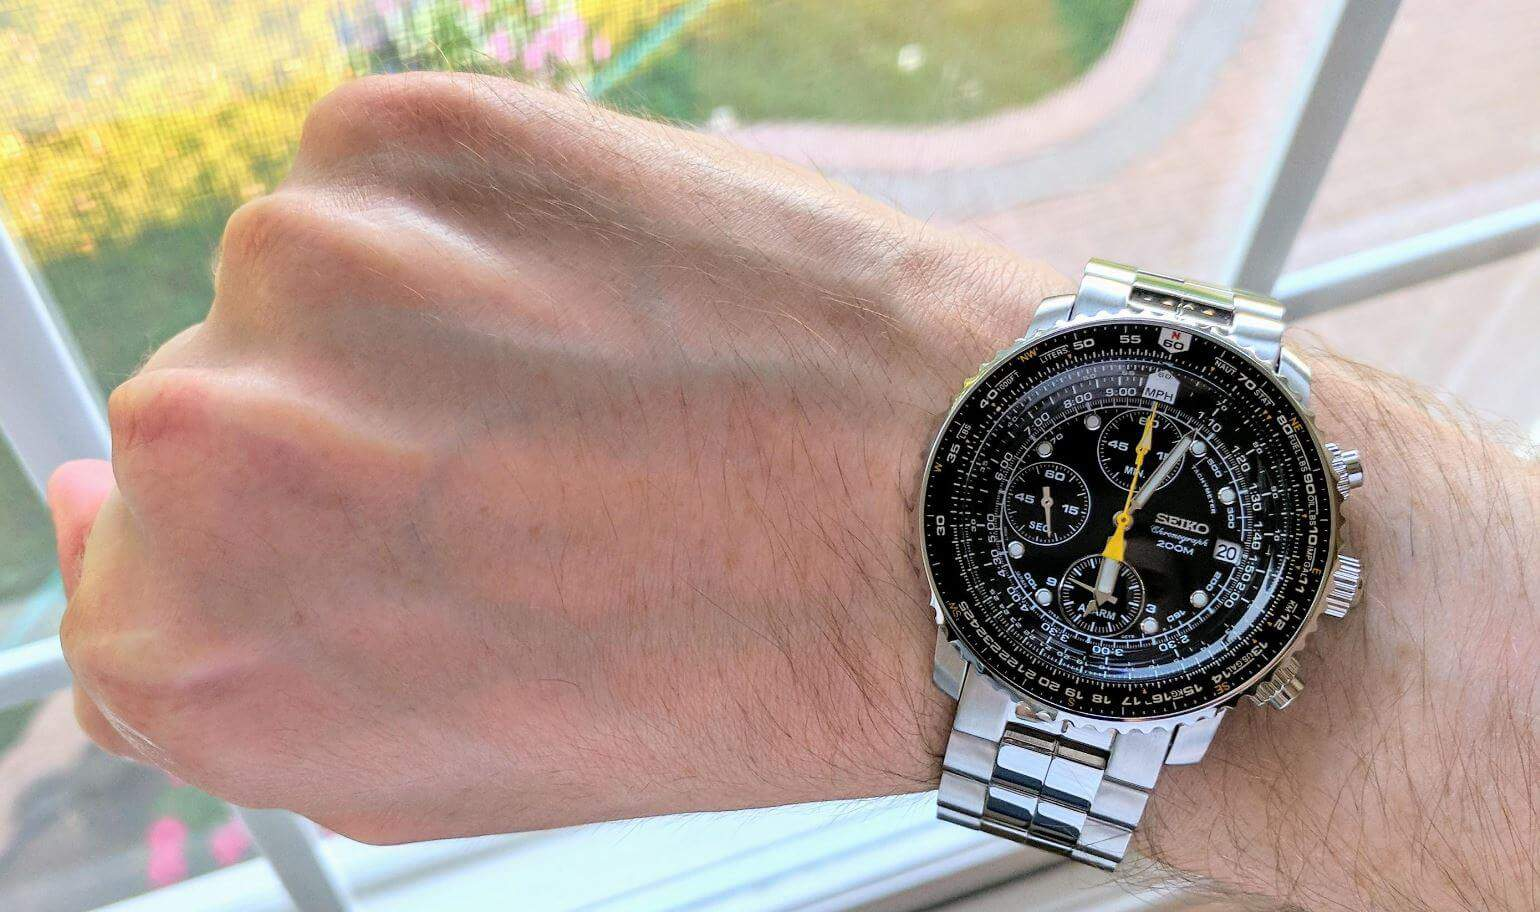 Seiko Flightmaster SNA411 Chronograph Watch kre